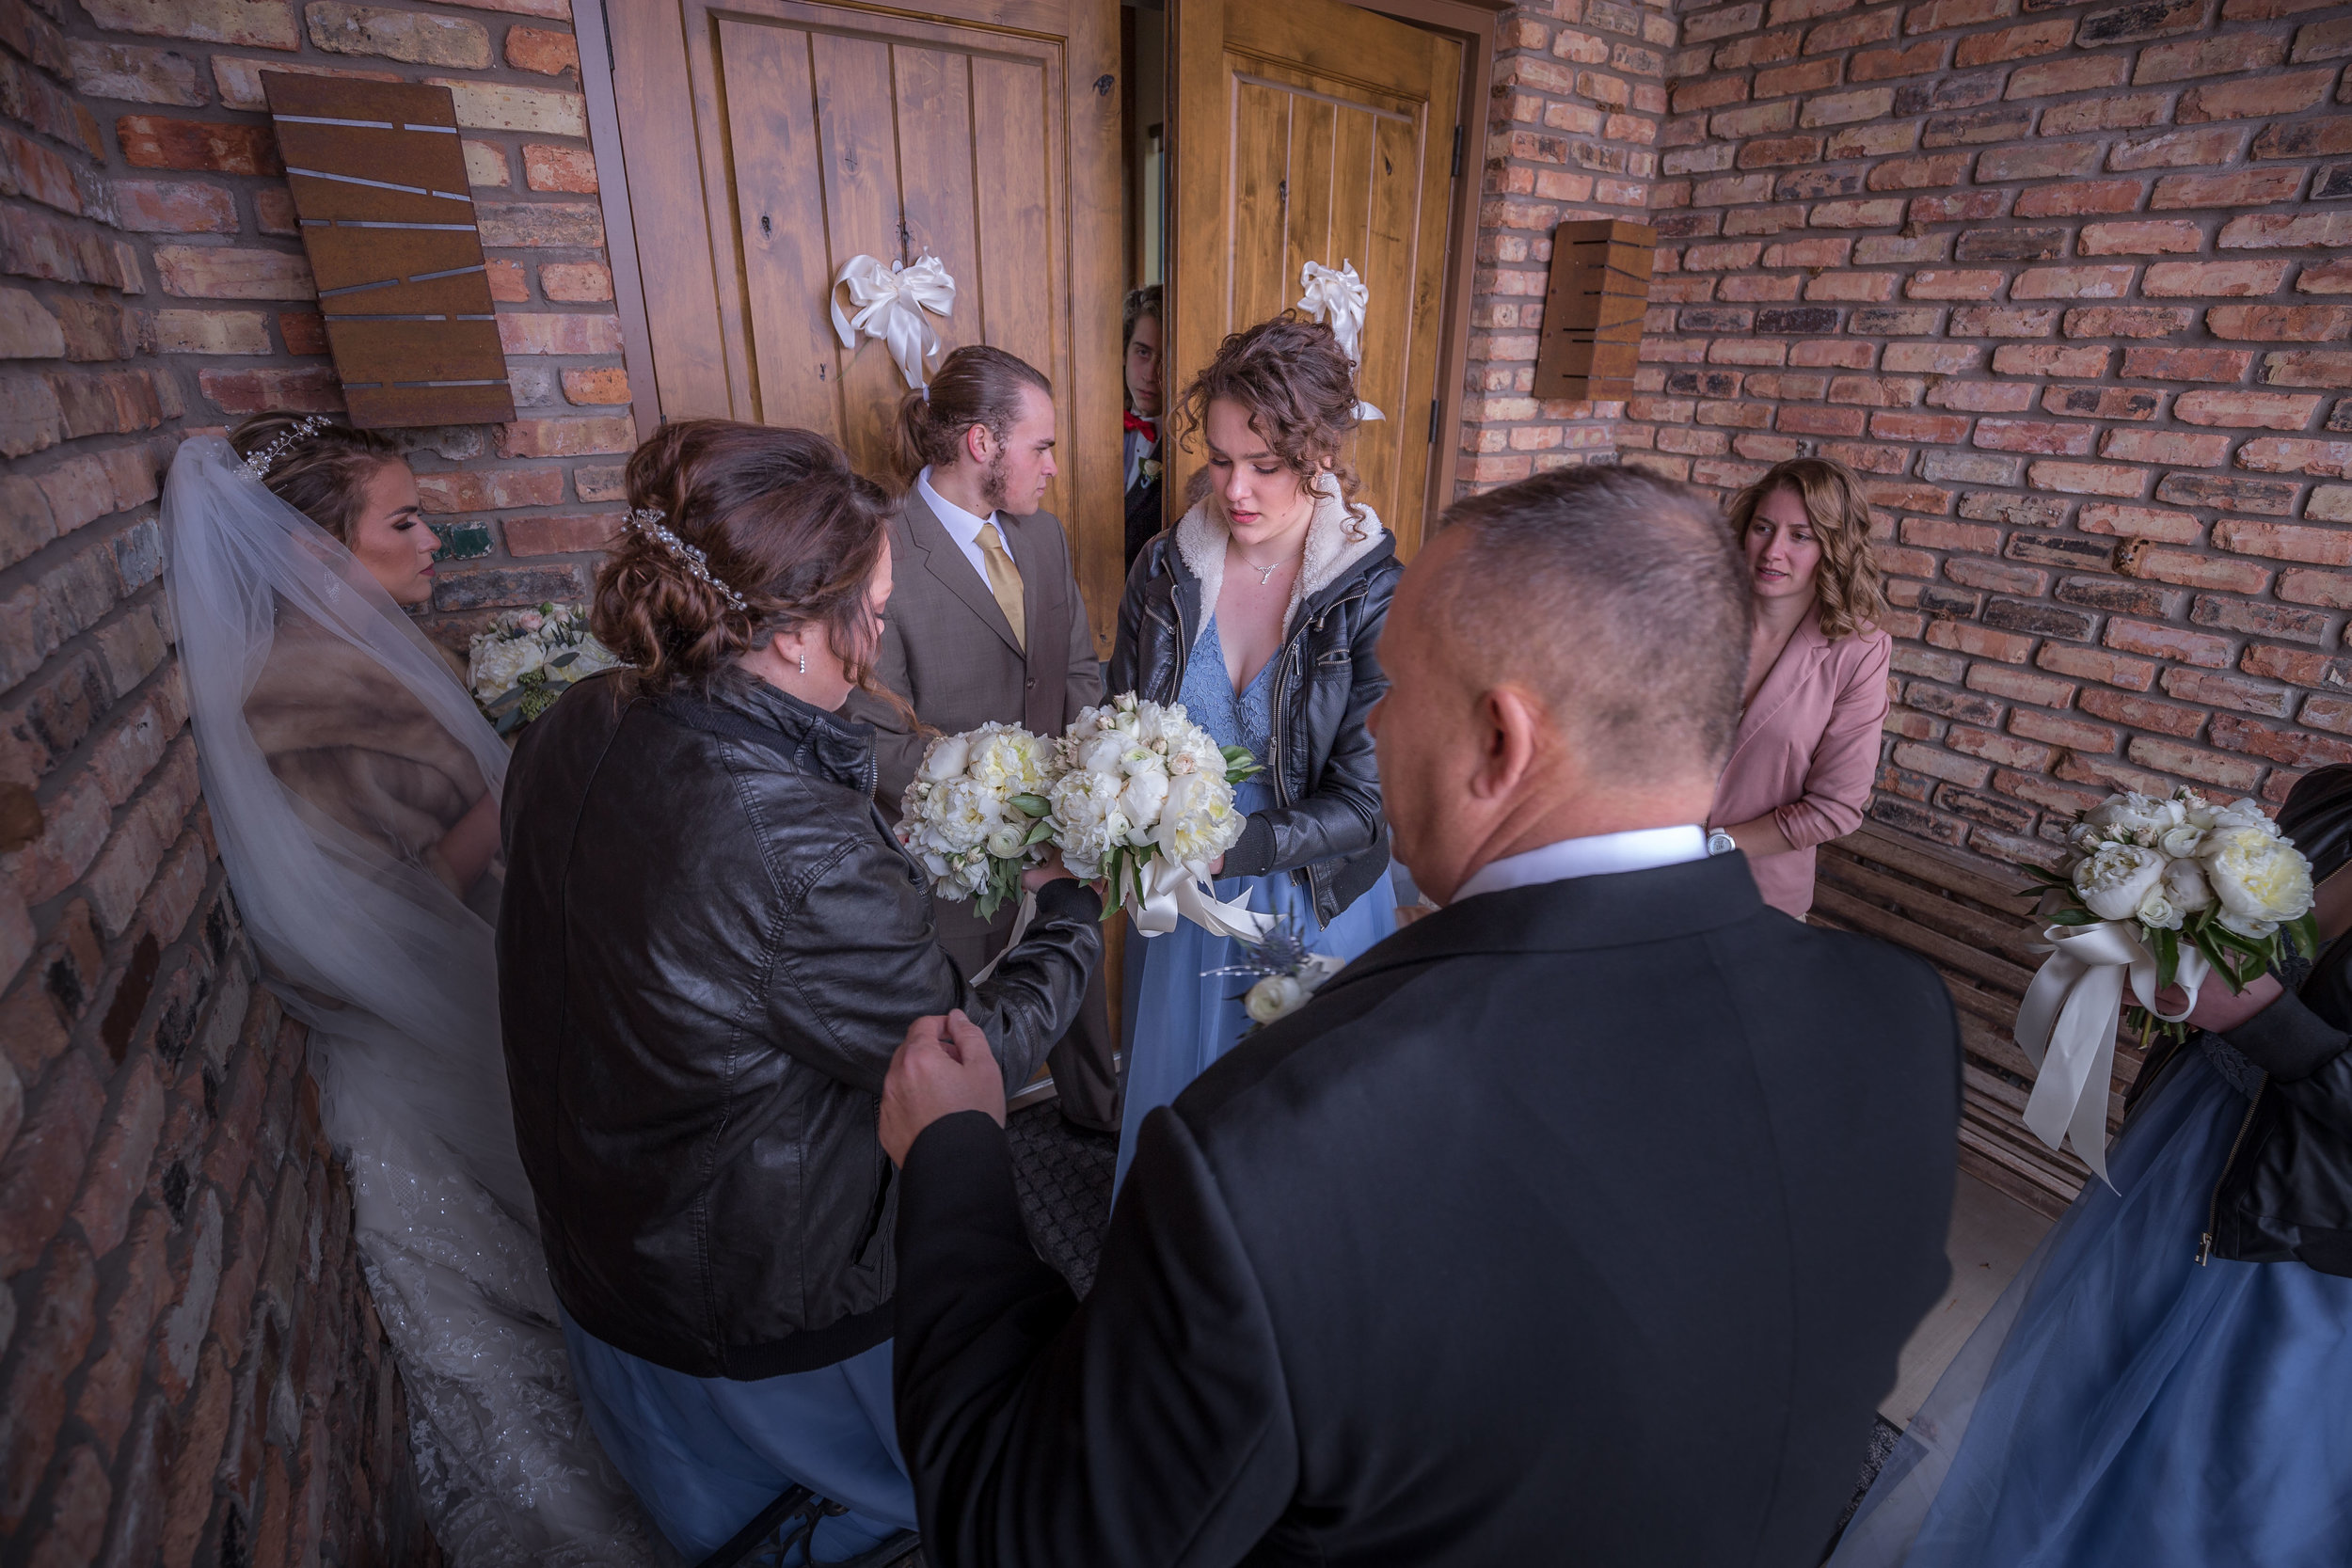 12.30.18 Maggies Wedding Webpage Edits-7.jpg